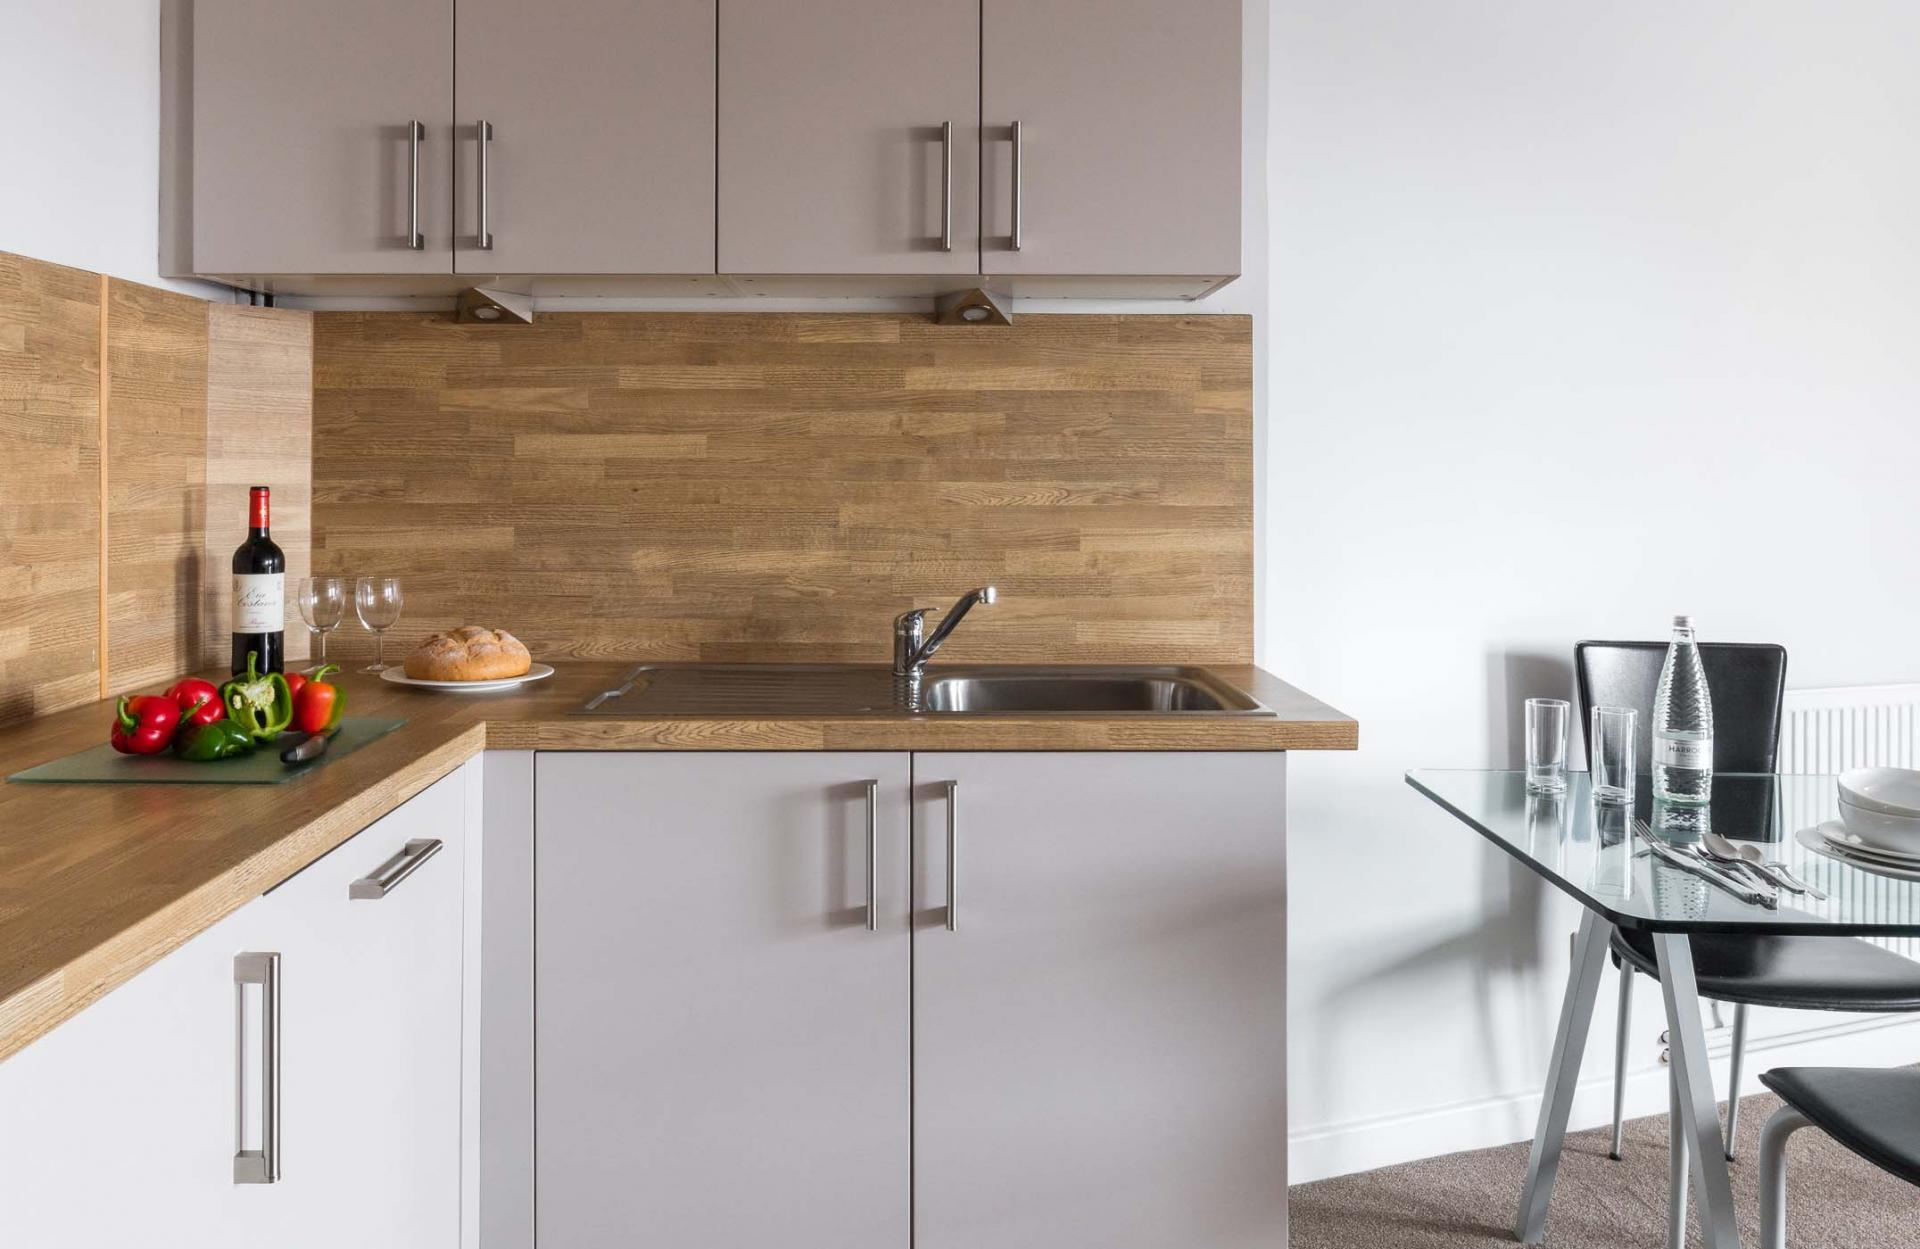 Modern kitchen in SACO Nottingham - The Ropewalk